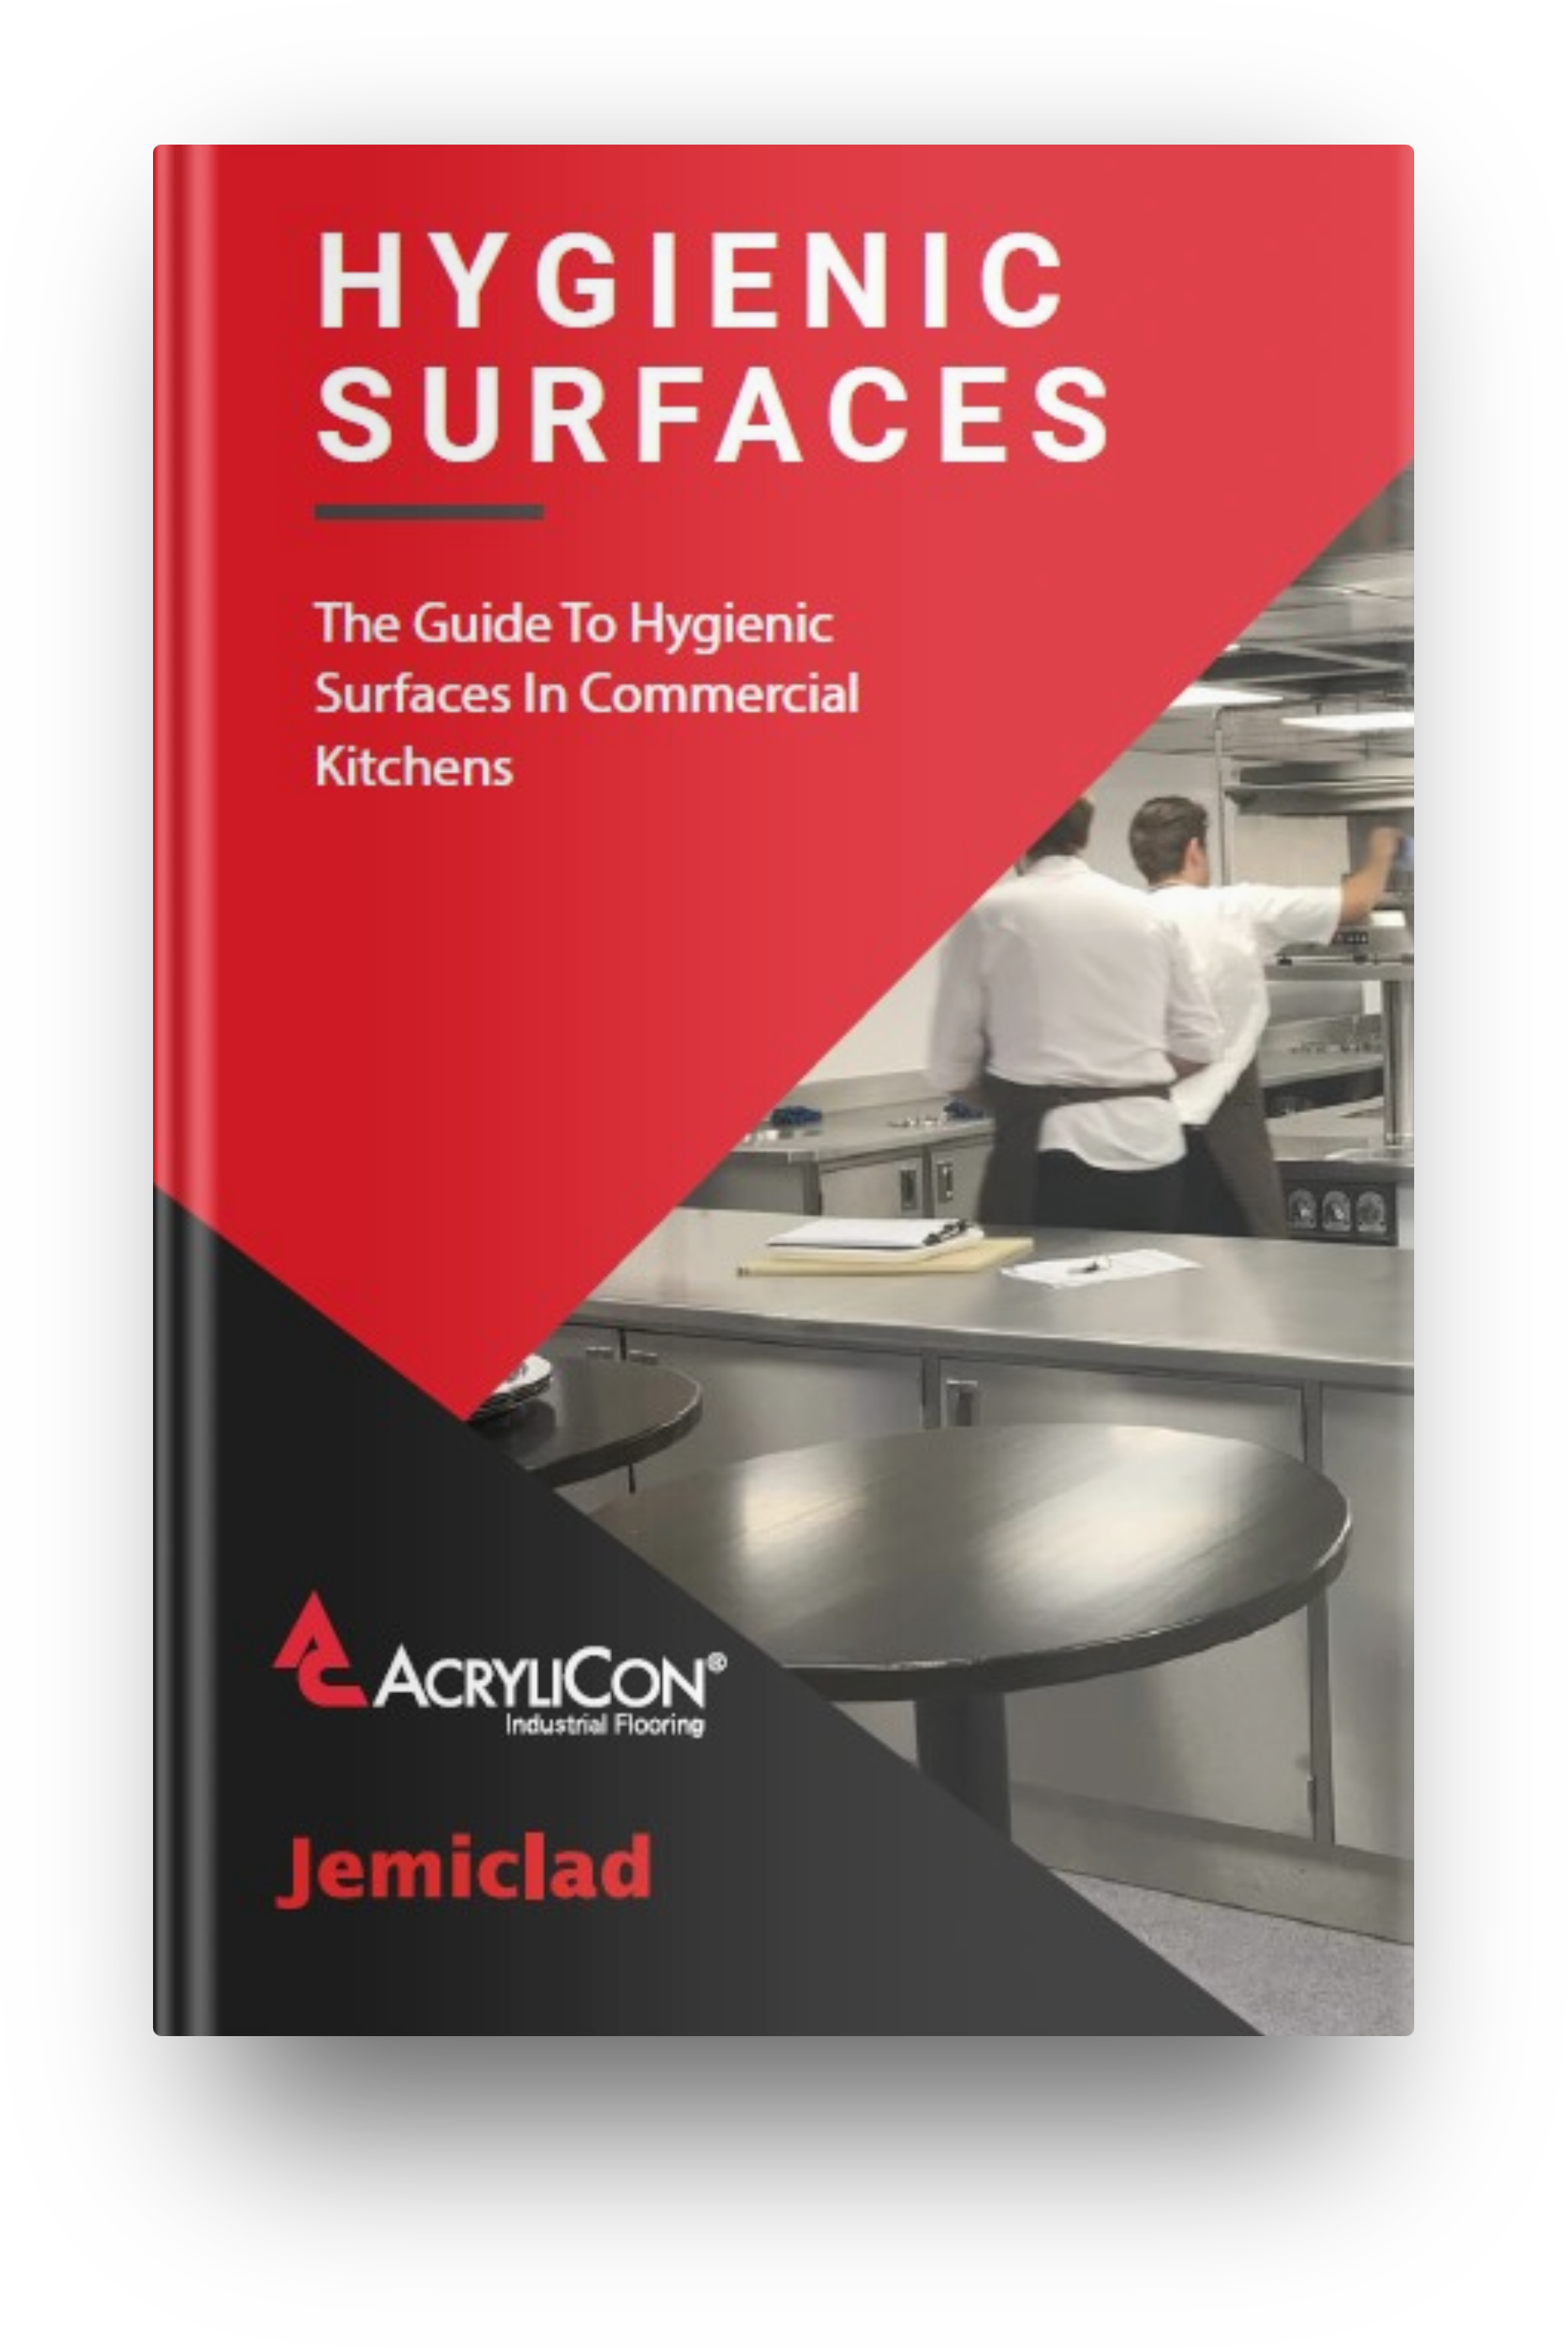 The Essential Guide To Hygienic Surfaces In Commercial Kitchens